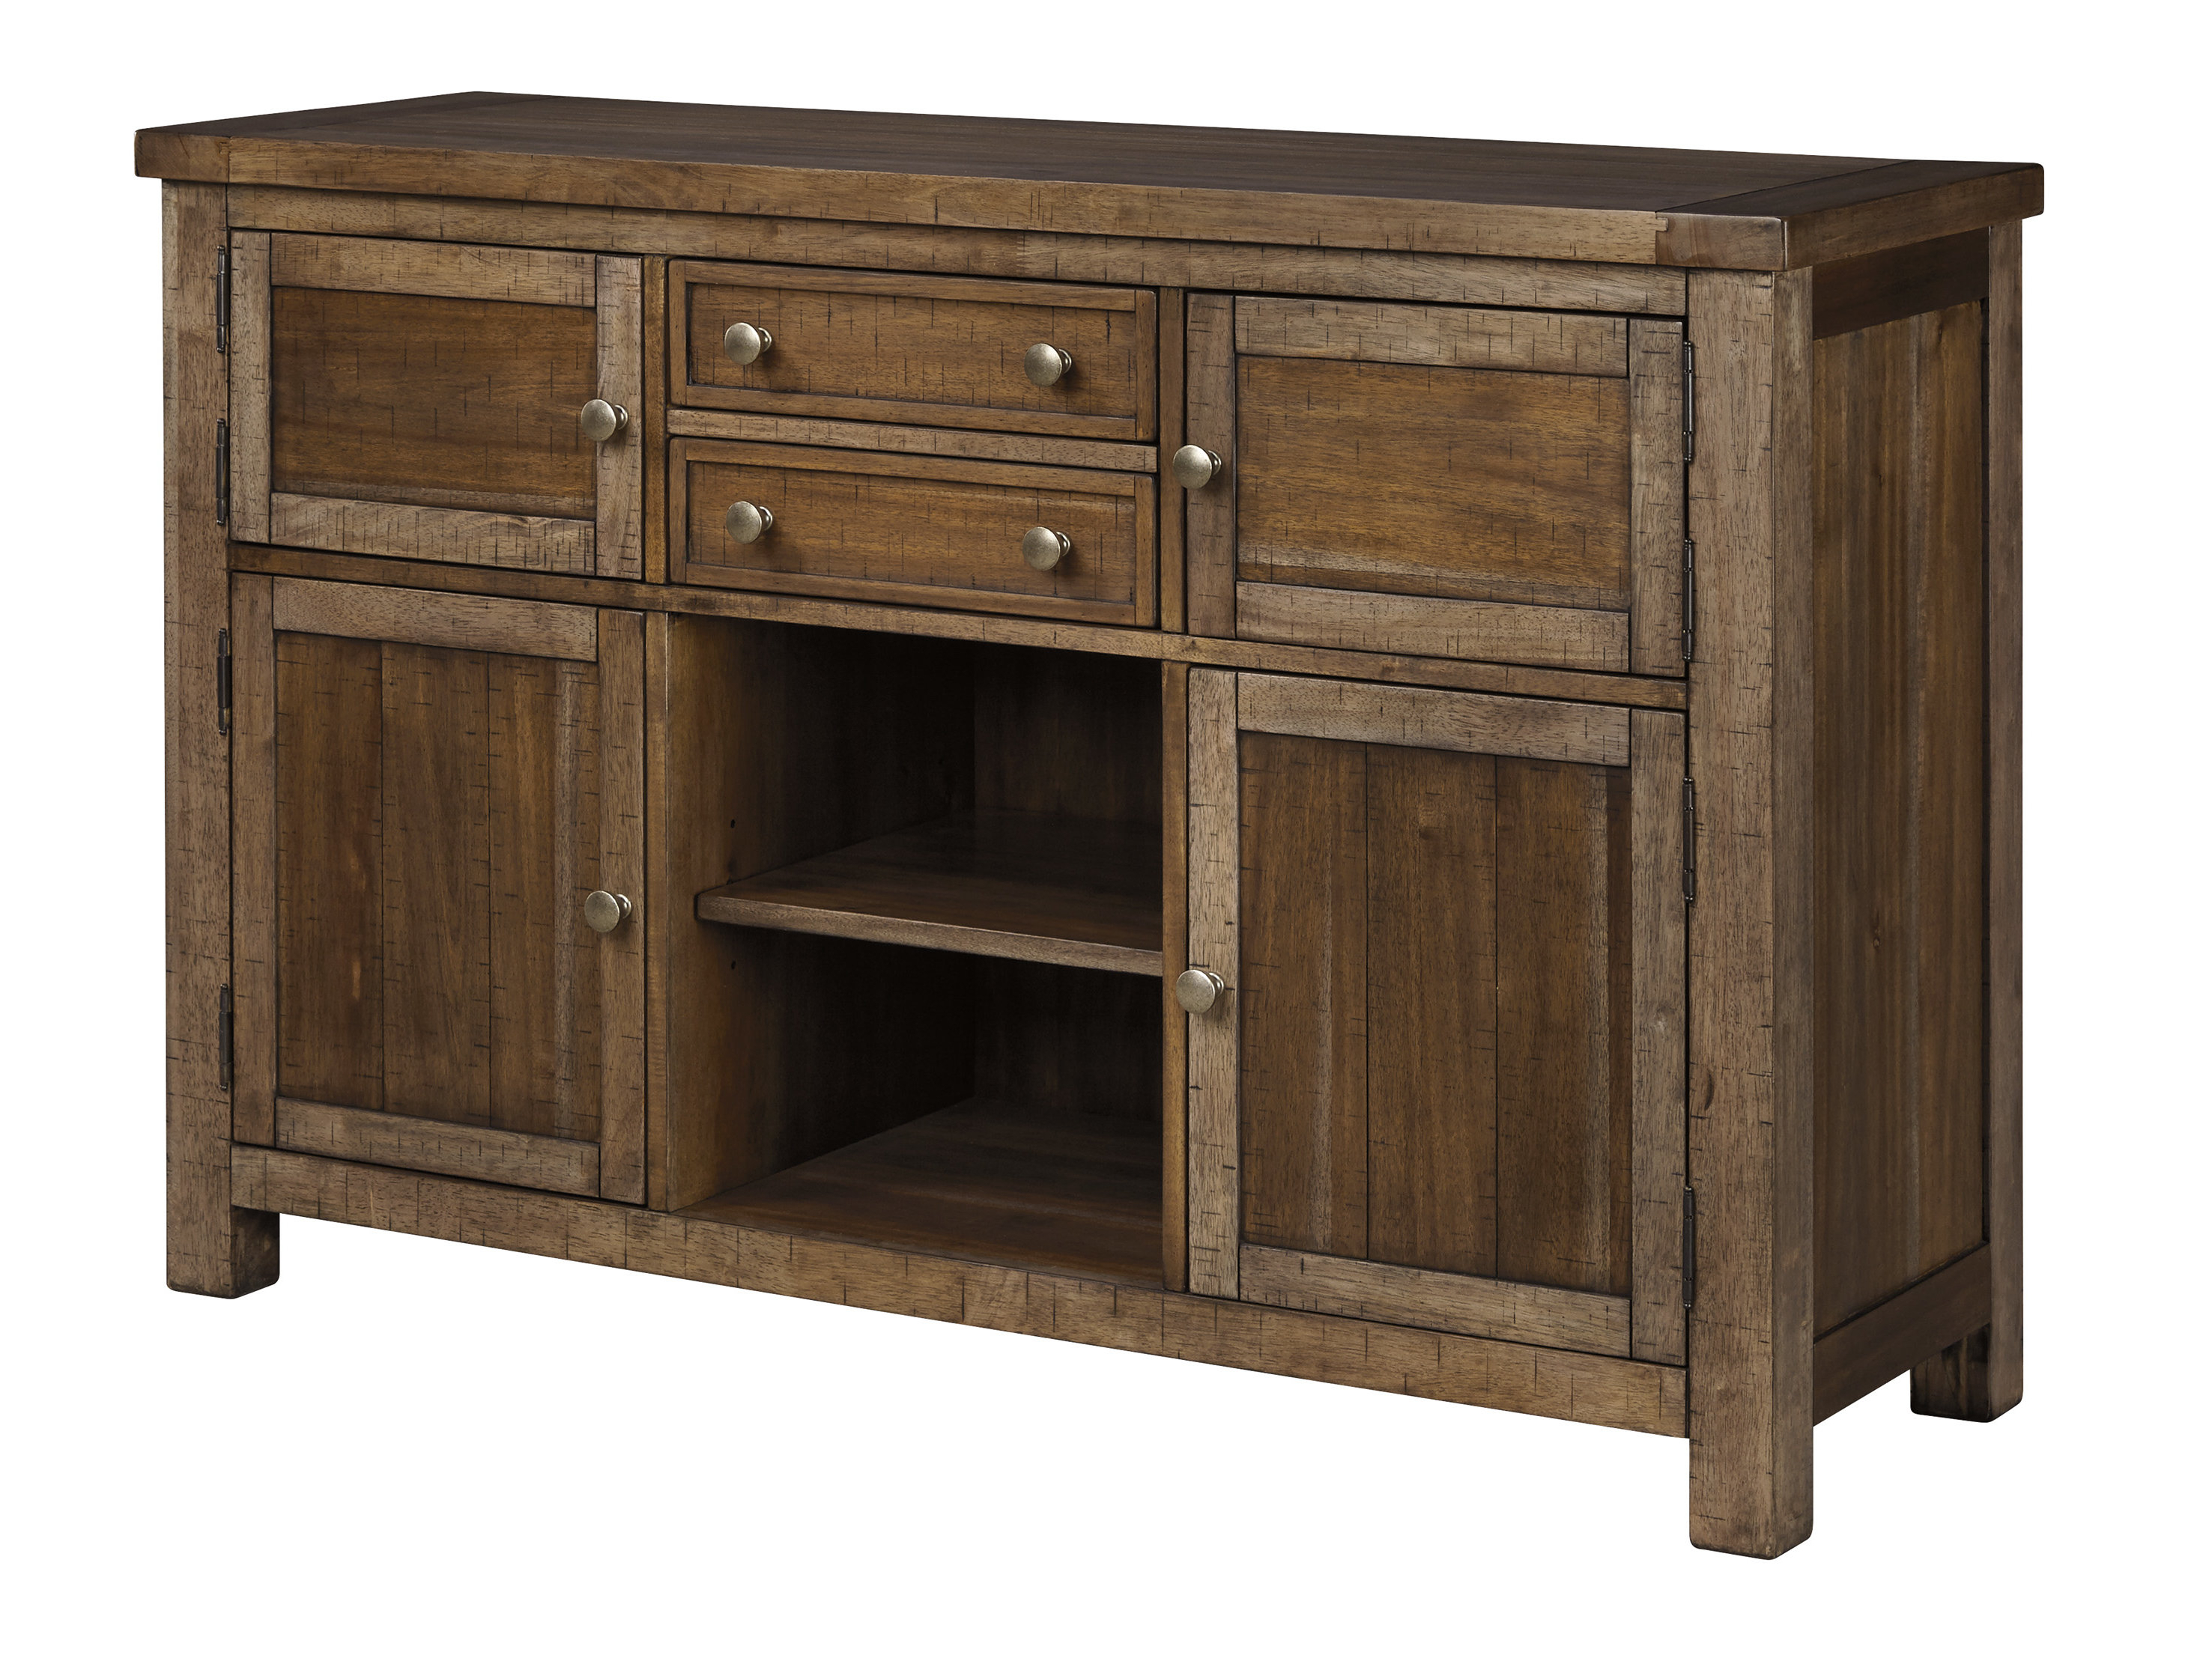 Hillary Dining Room Buffet Table For Well Known Whitten Sideboards (View 6 of 20)